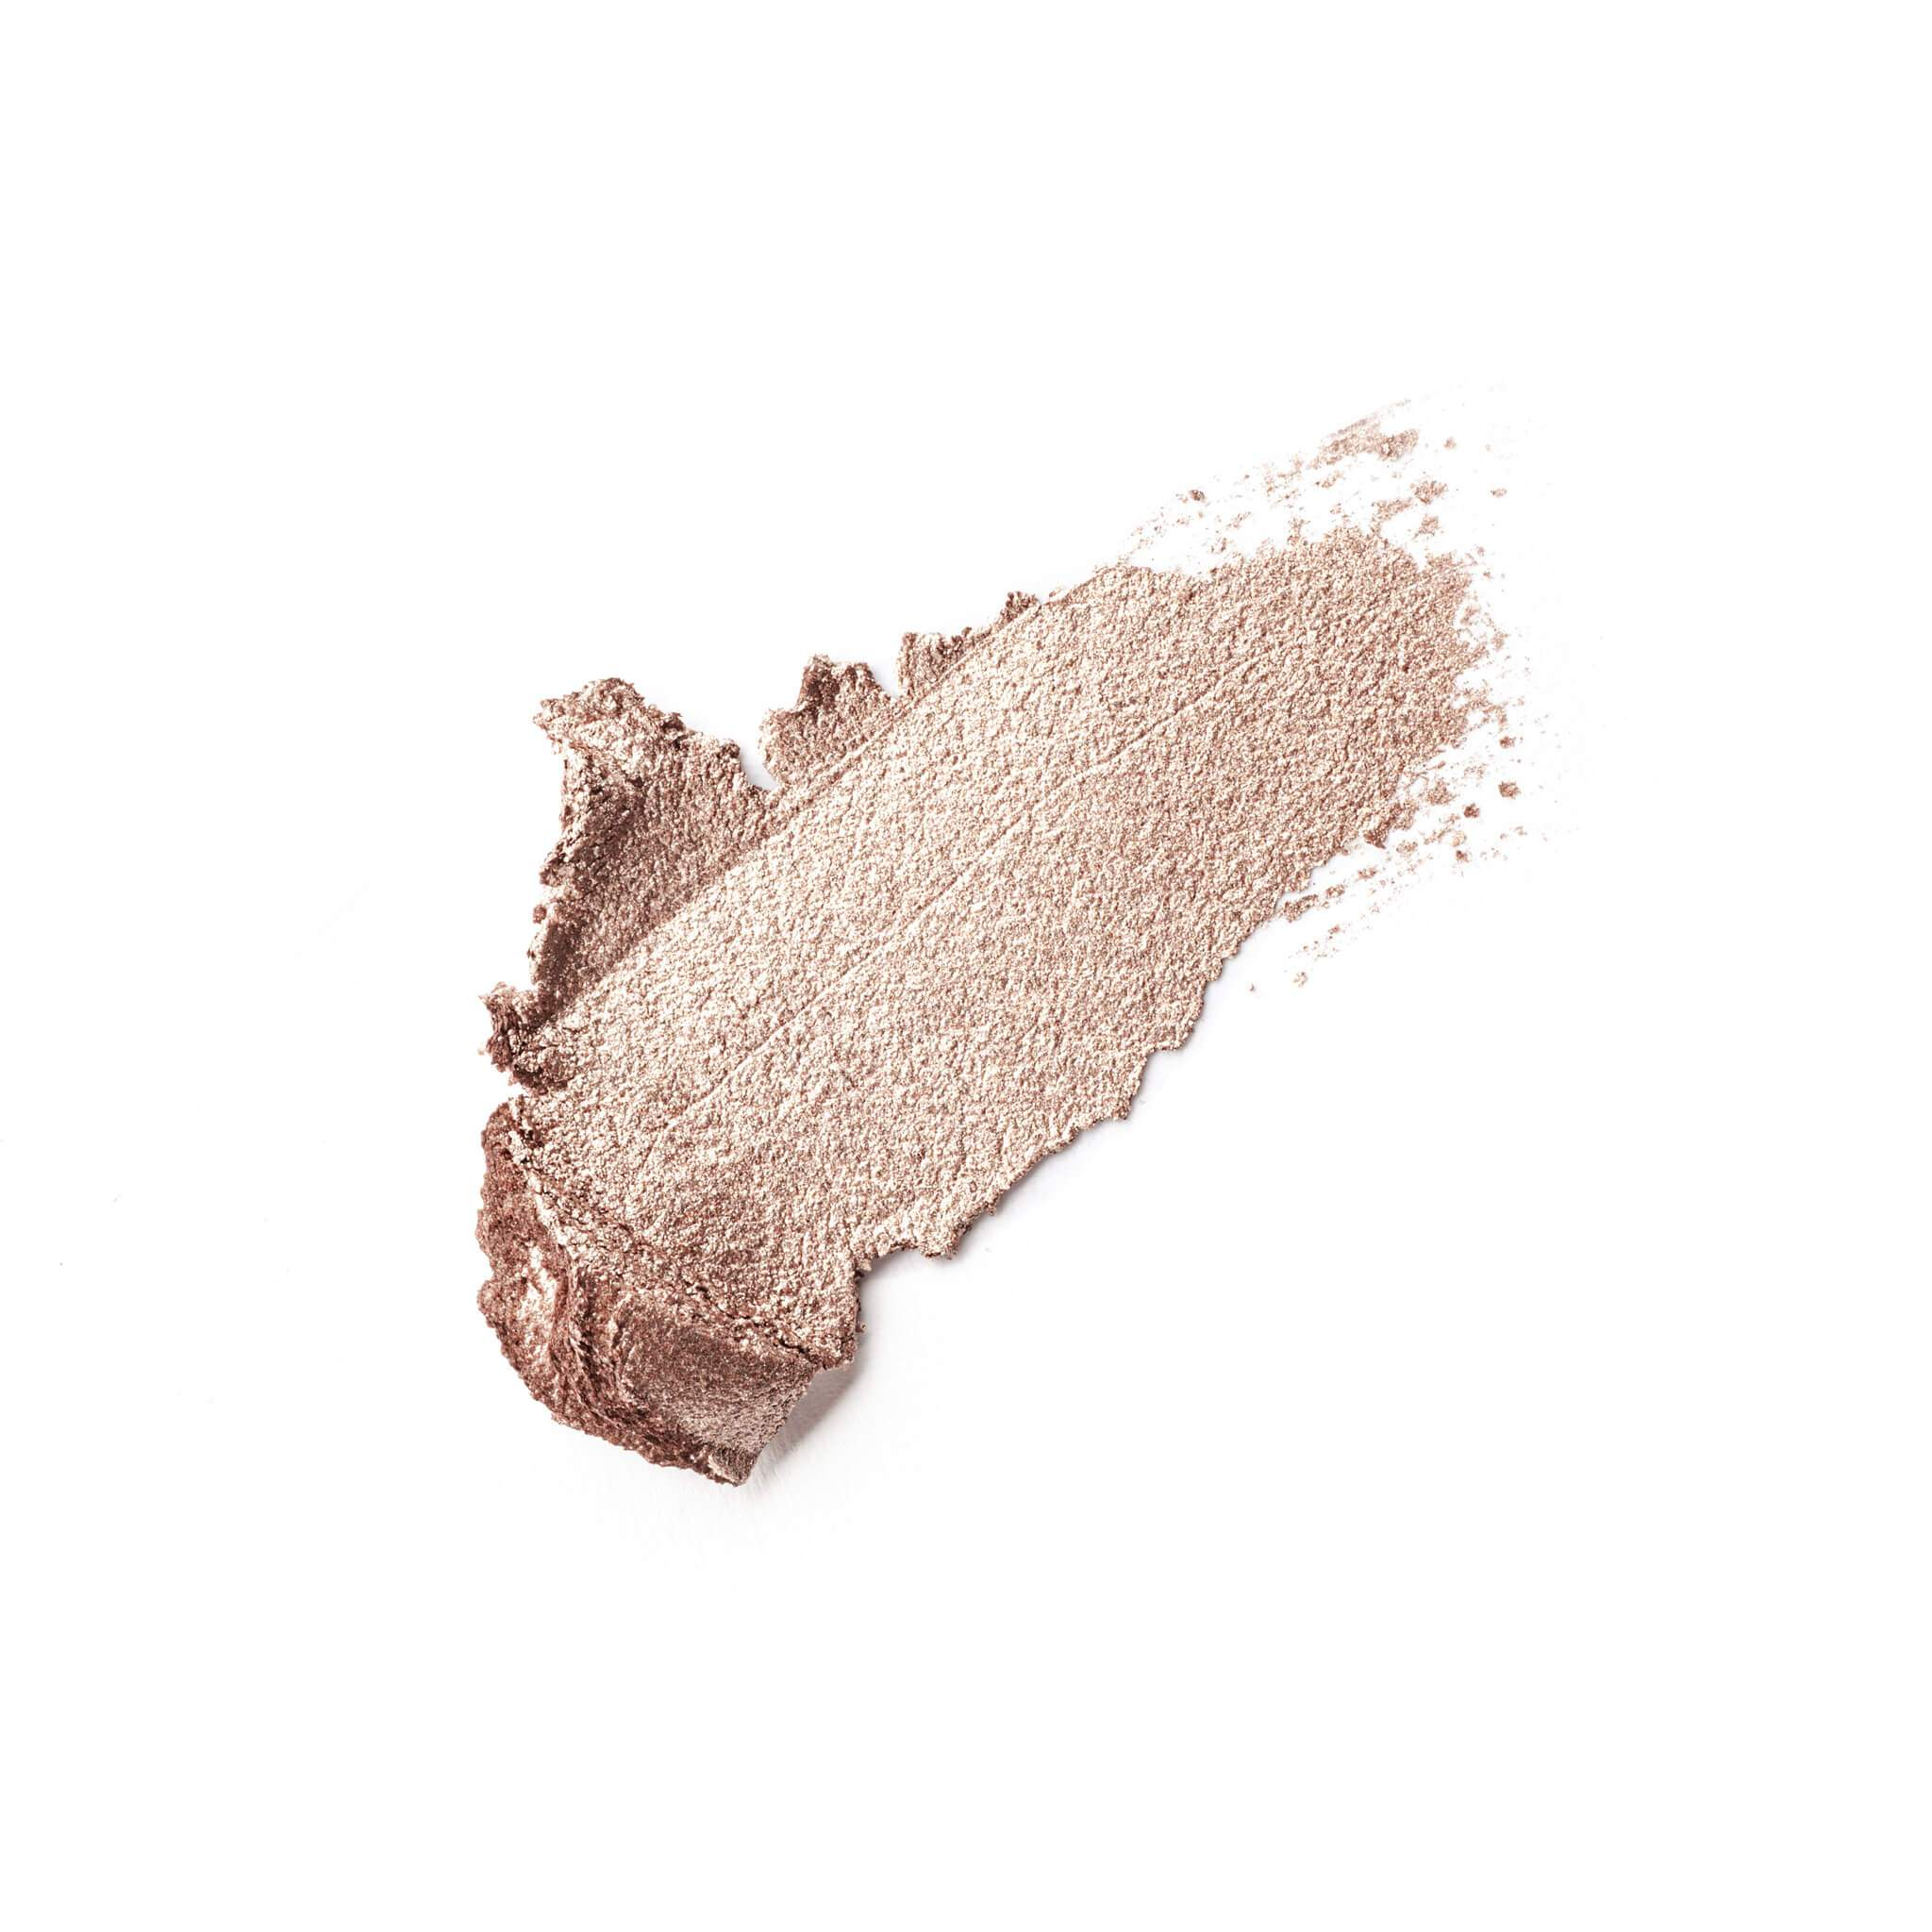 ENDURANCE CREAM EYESHADOW - PINK